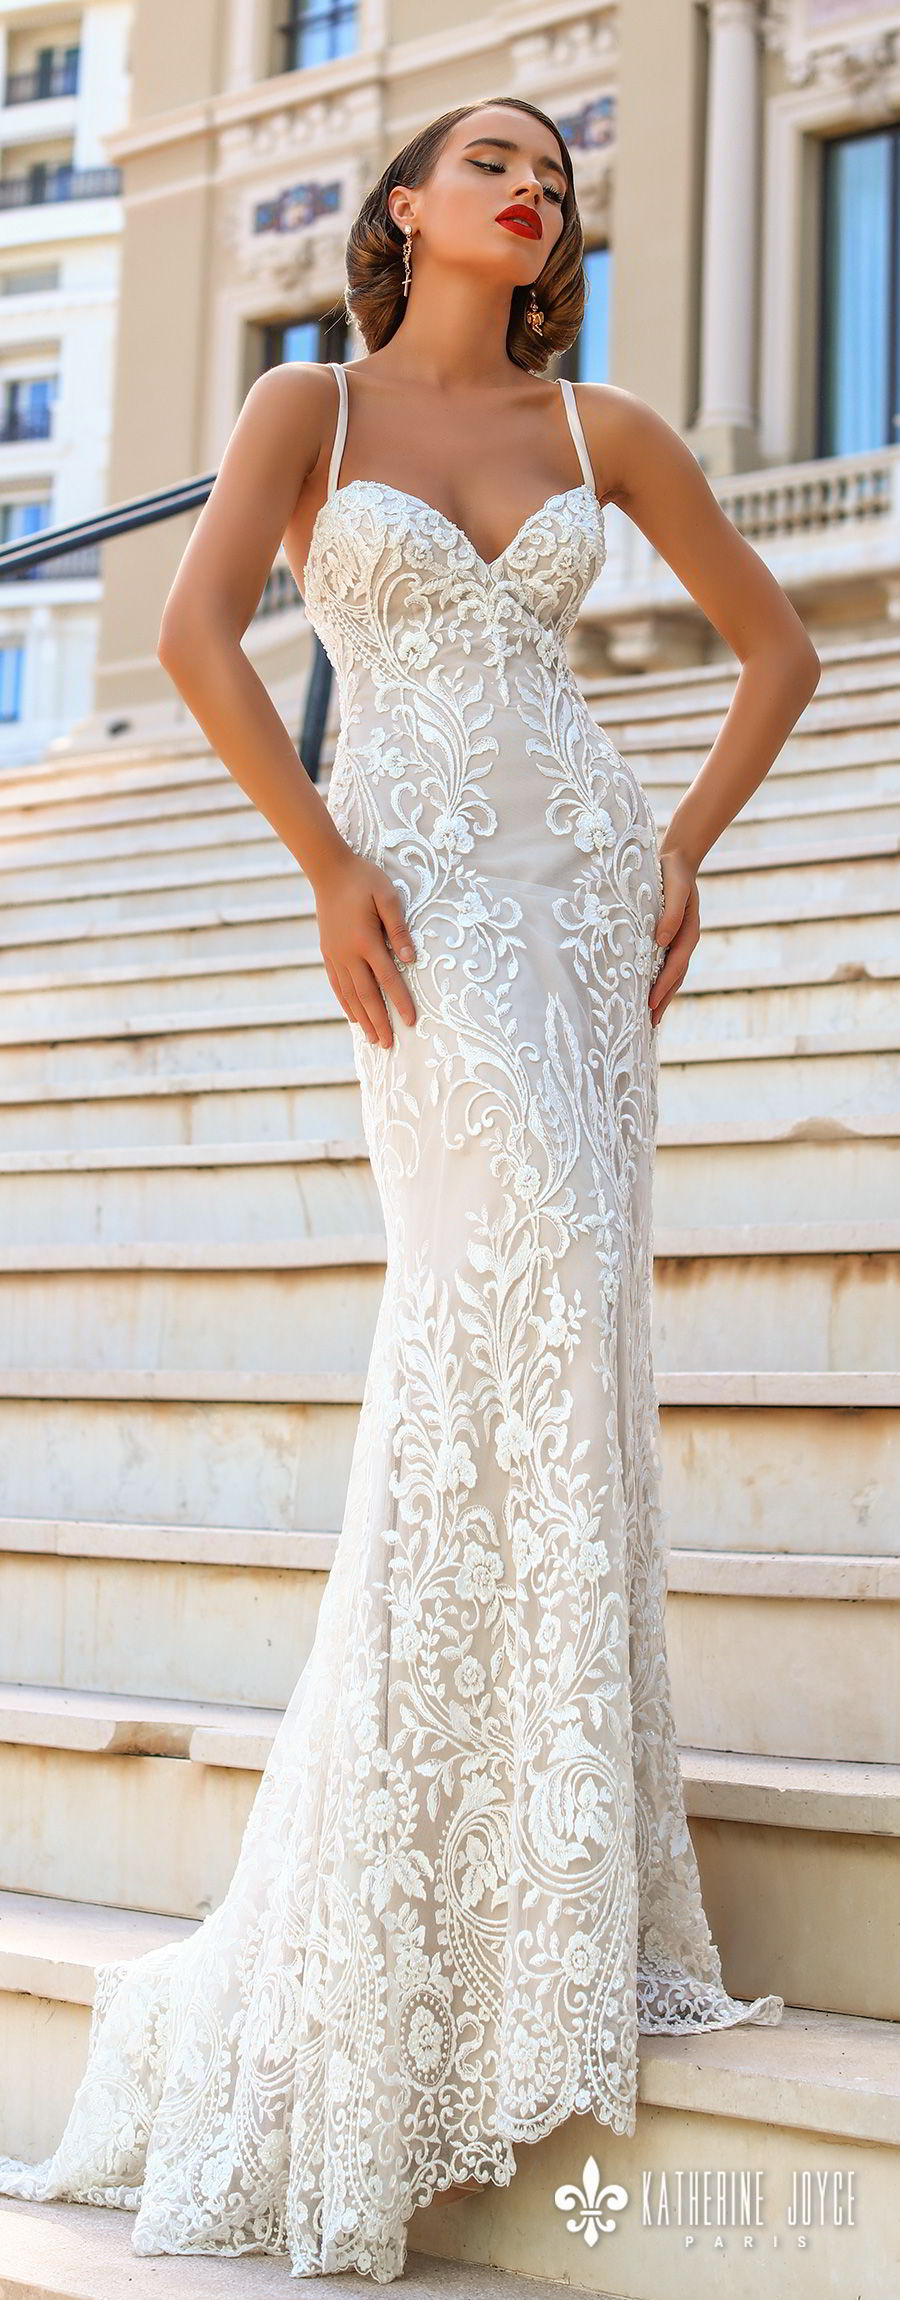 Katherine Joyce 2018 Bridal Sleeveless Thin Strap Sweetheart Neckline Full Embellishment Elegant Sheath Wedding Dress Cross